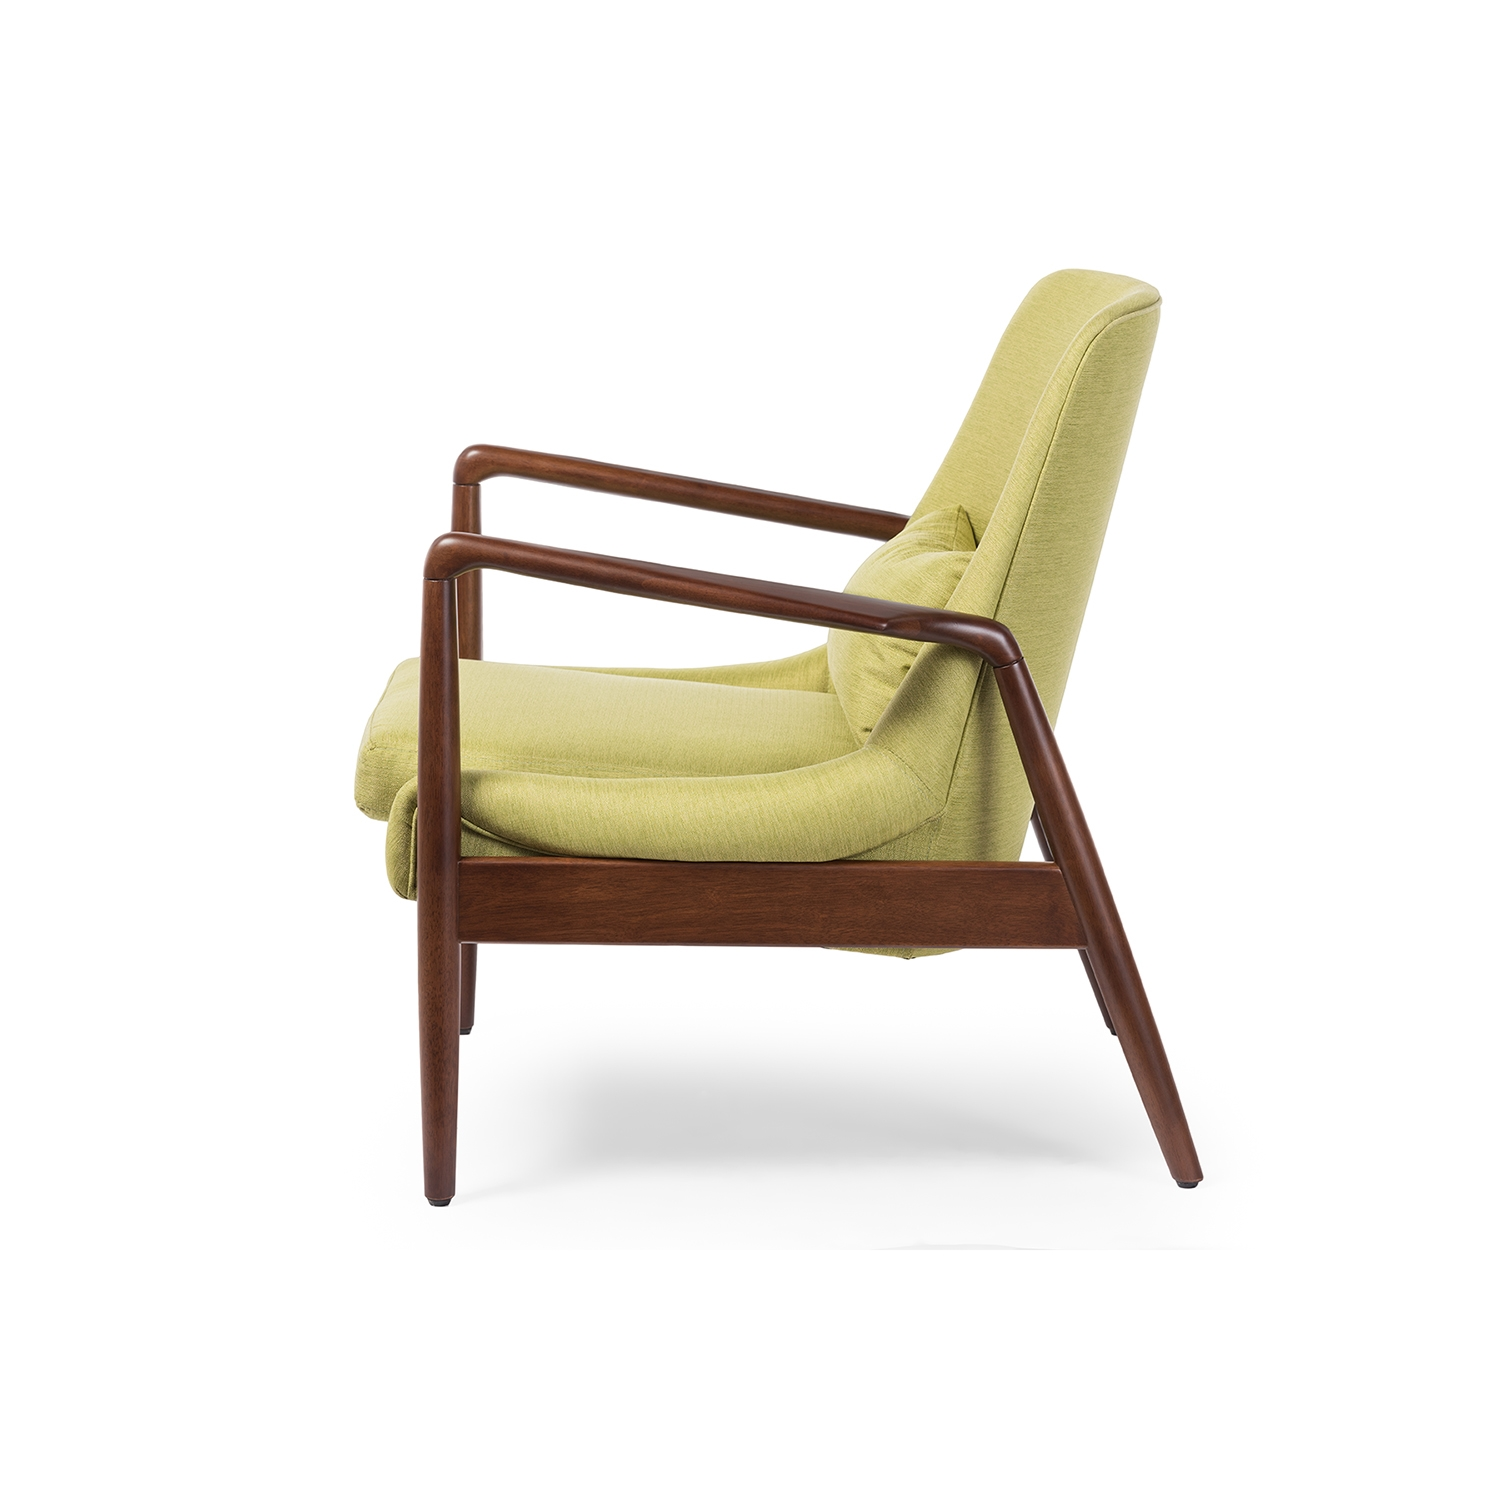 Awesome Mid Century Accent Chair Part - 2: ... Baxton Studio Carter Mid-Century Modern Retro Green Fabric Upholstered  Leisure Accent Chair In Walnut ...